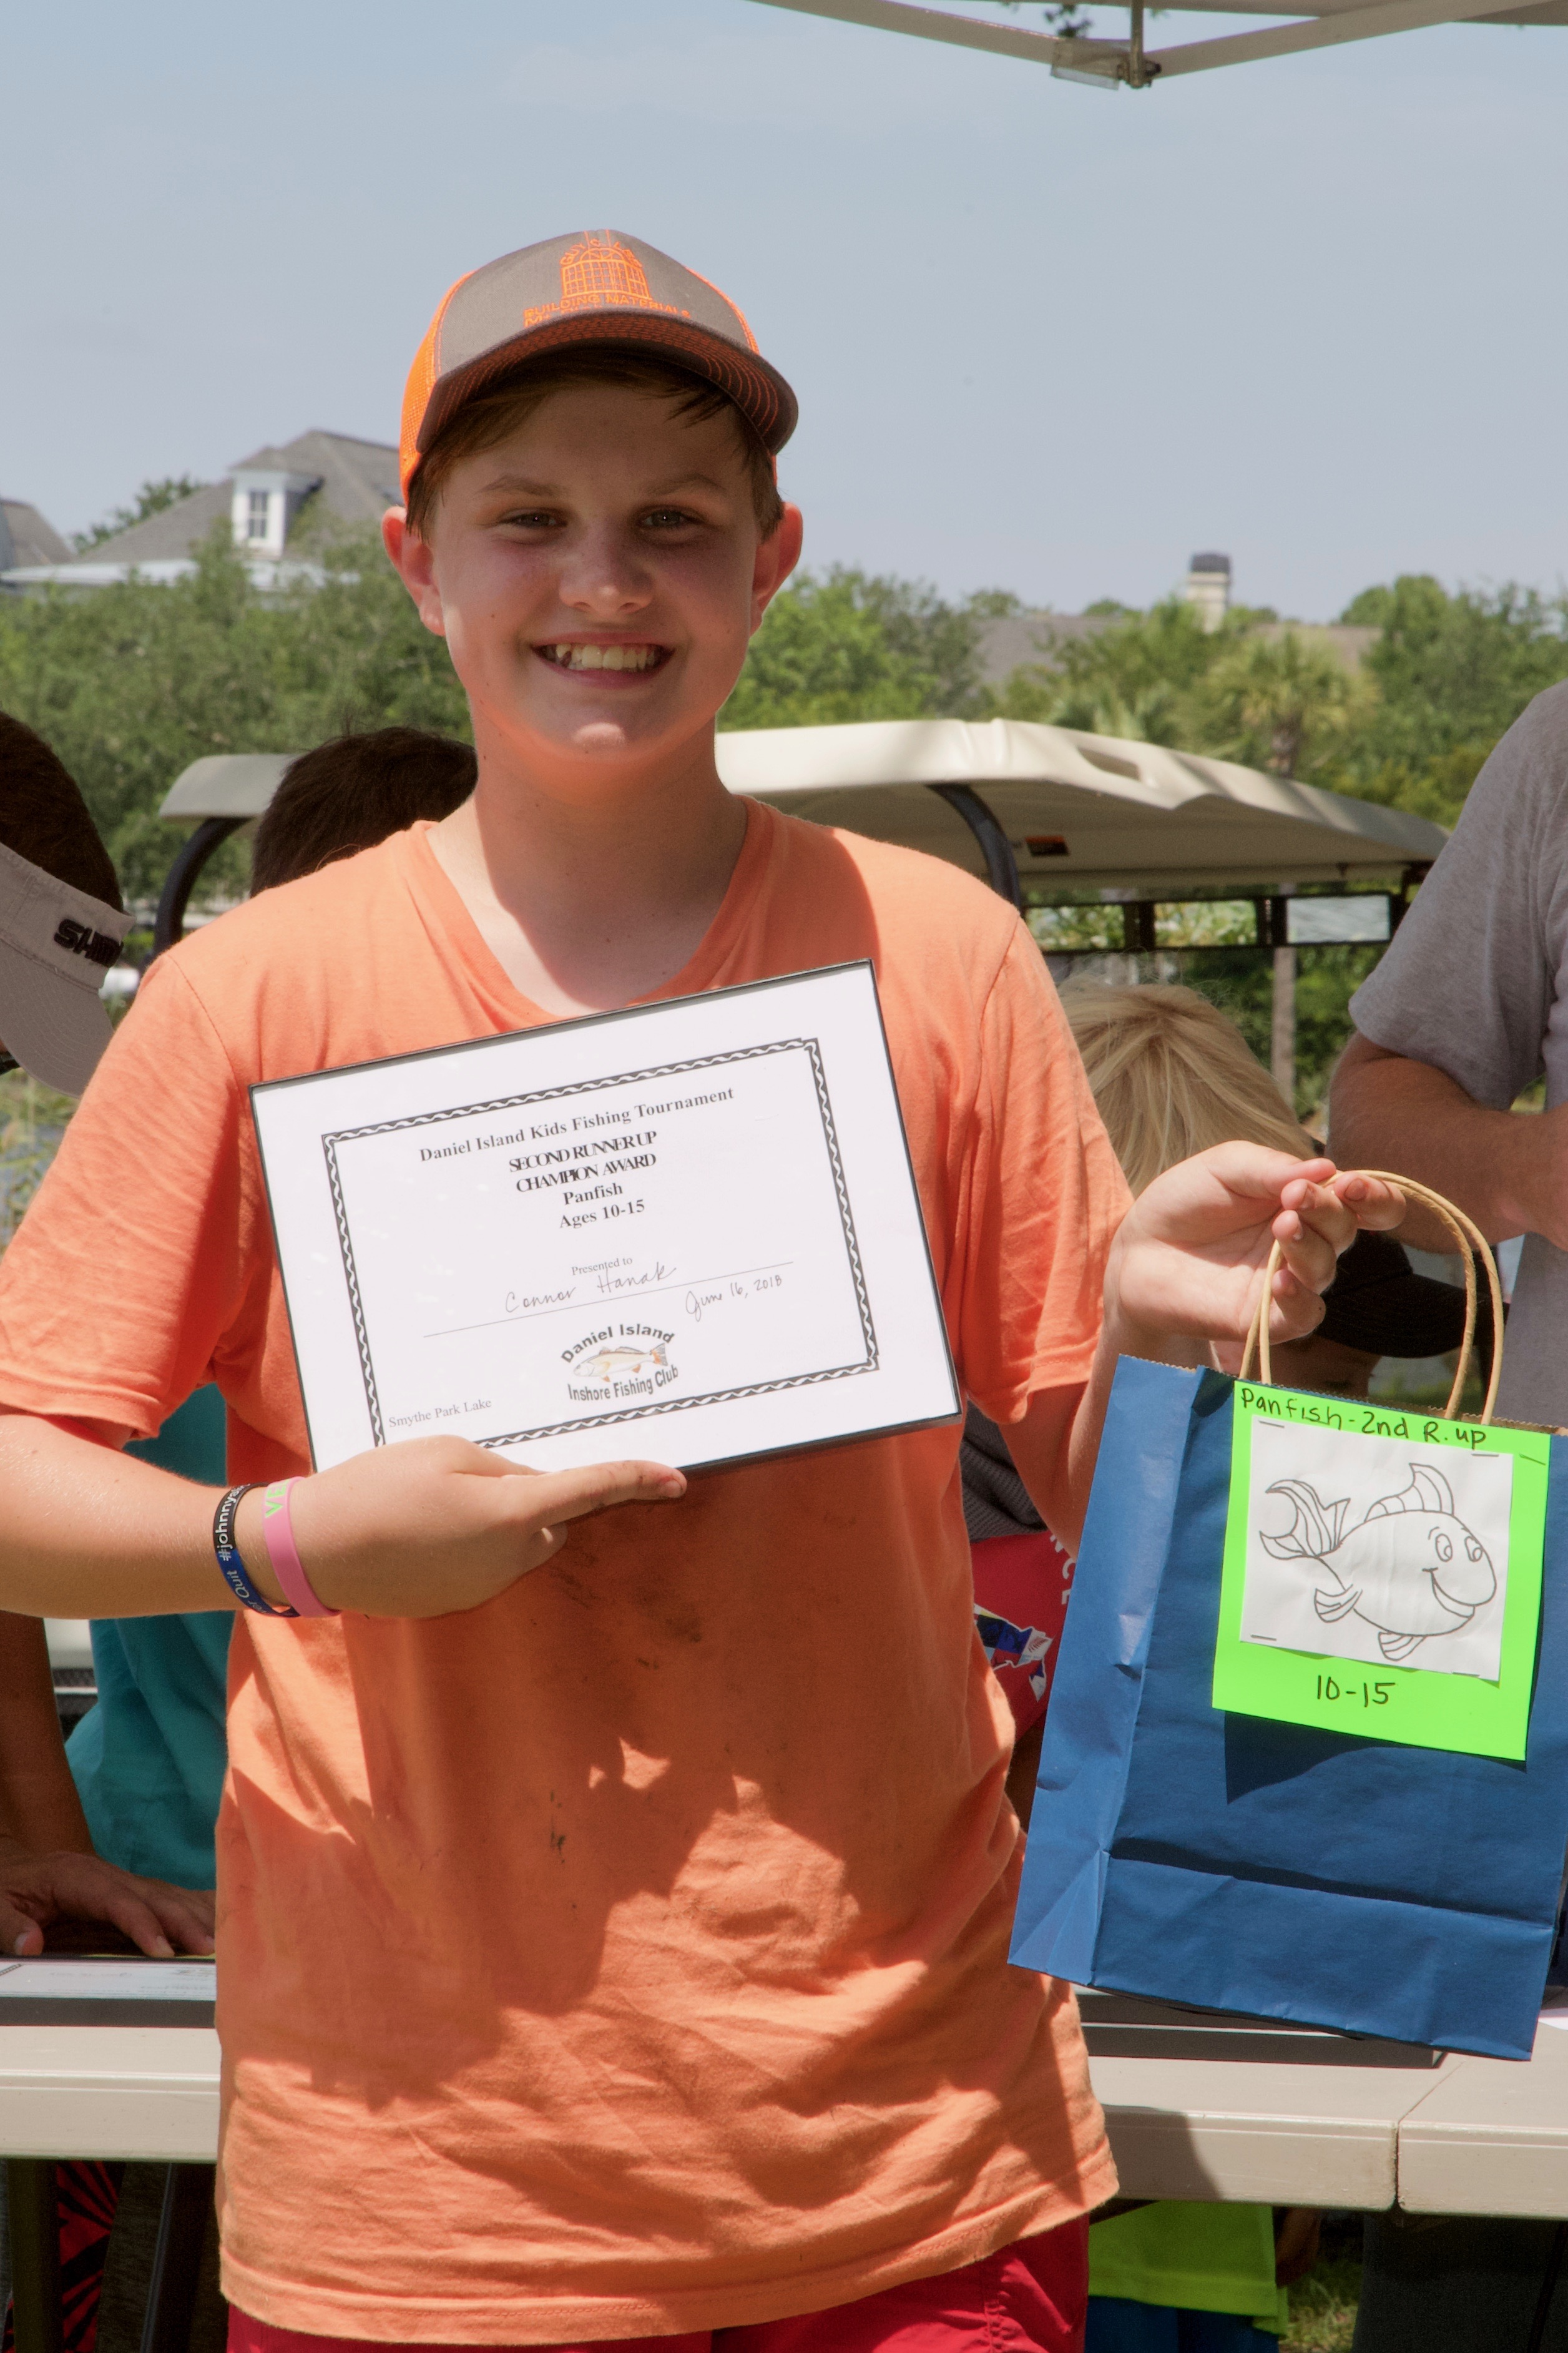 Connor Hanak - Champion Award, 2nd Runner Up,  Panfish, Ages 10-15.